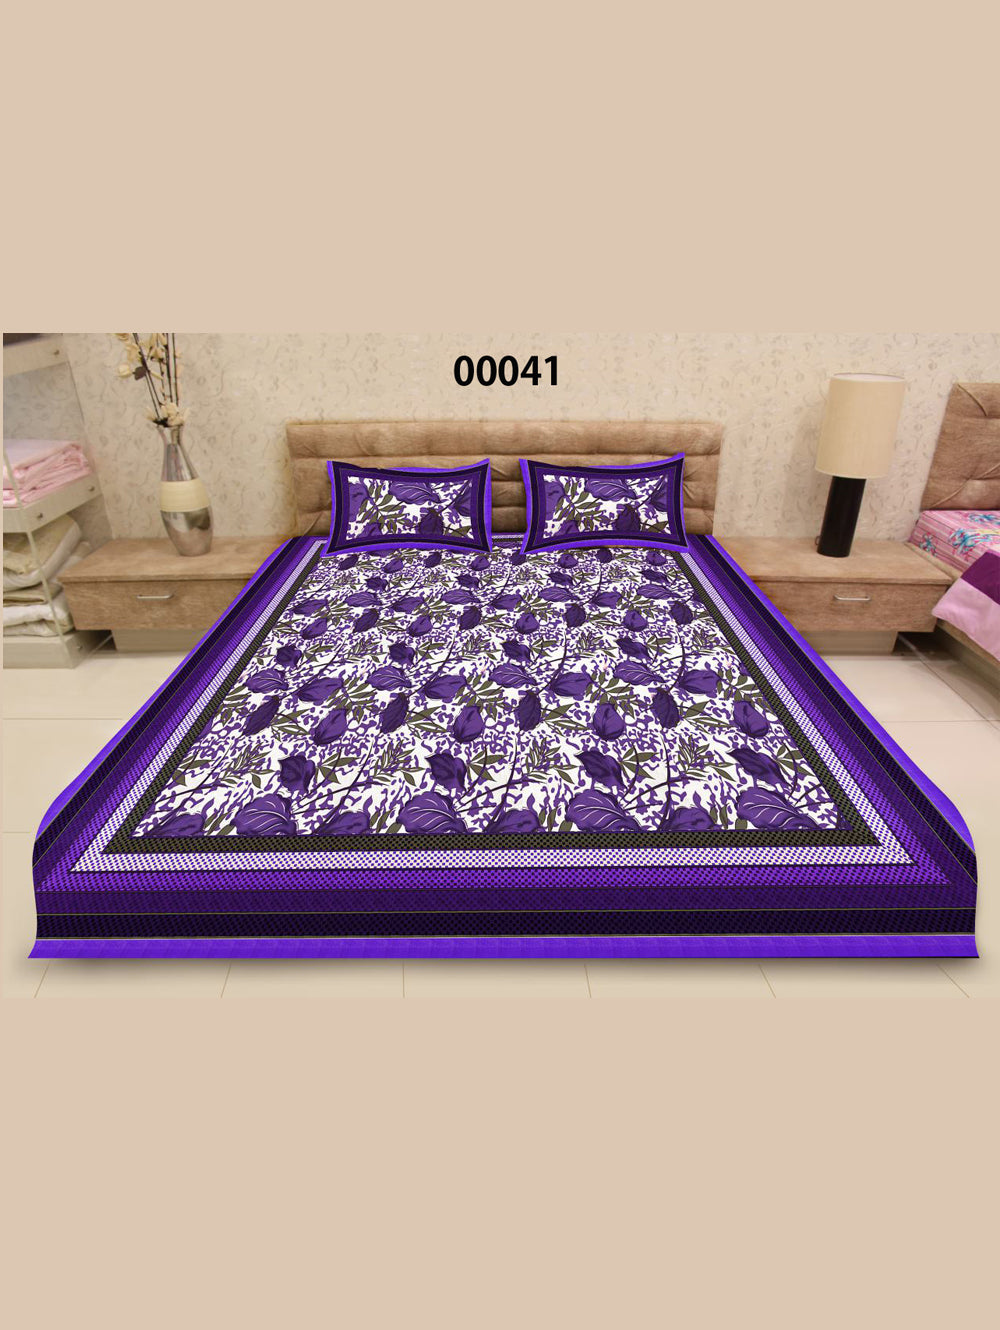 00041Indigo and White Ethnic Cotton Queen Size Floral Bedsheet With 2 Pillow Covers